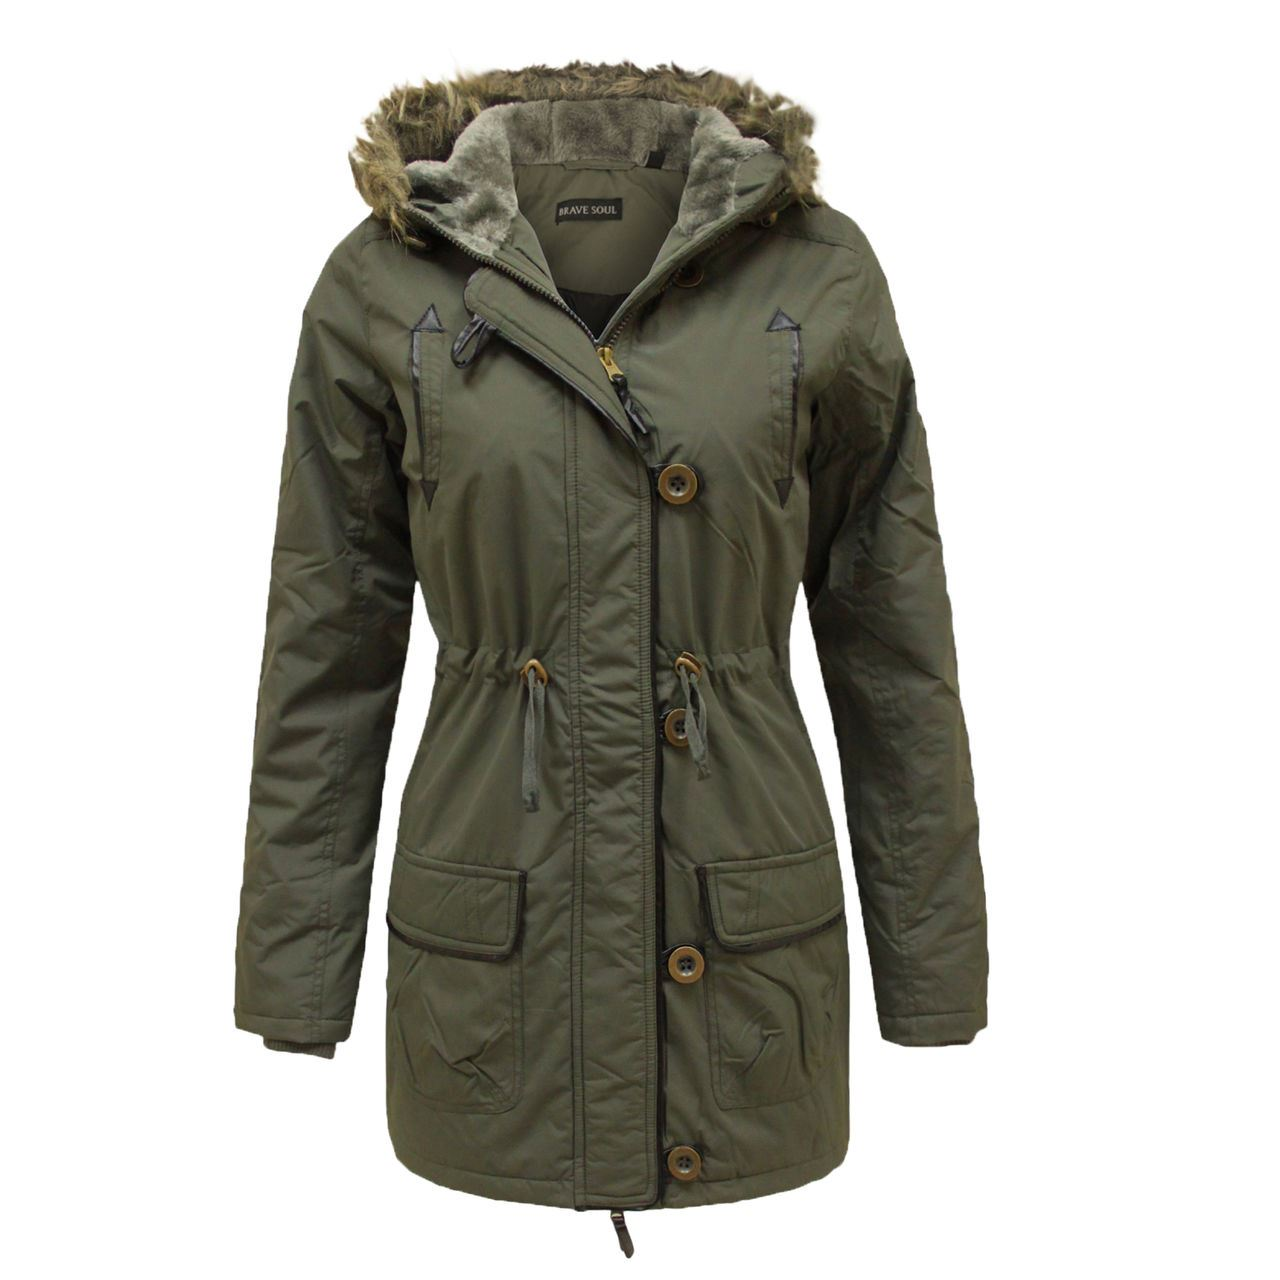 Free shipping BOTH ways on womens military jackets, from our vast selection of styles. Fast delivery, and 24/7/ real-person service with a smile. Click or call